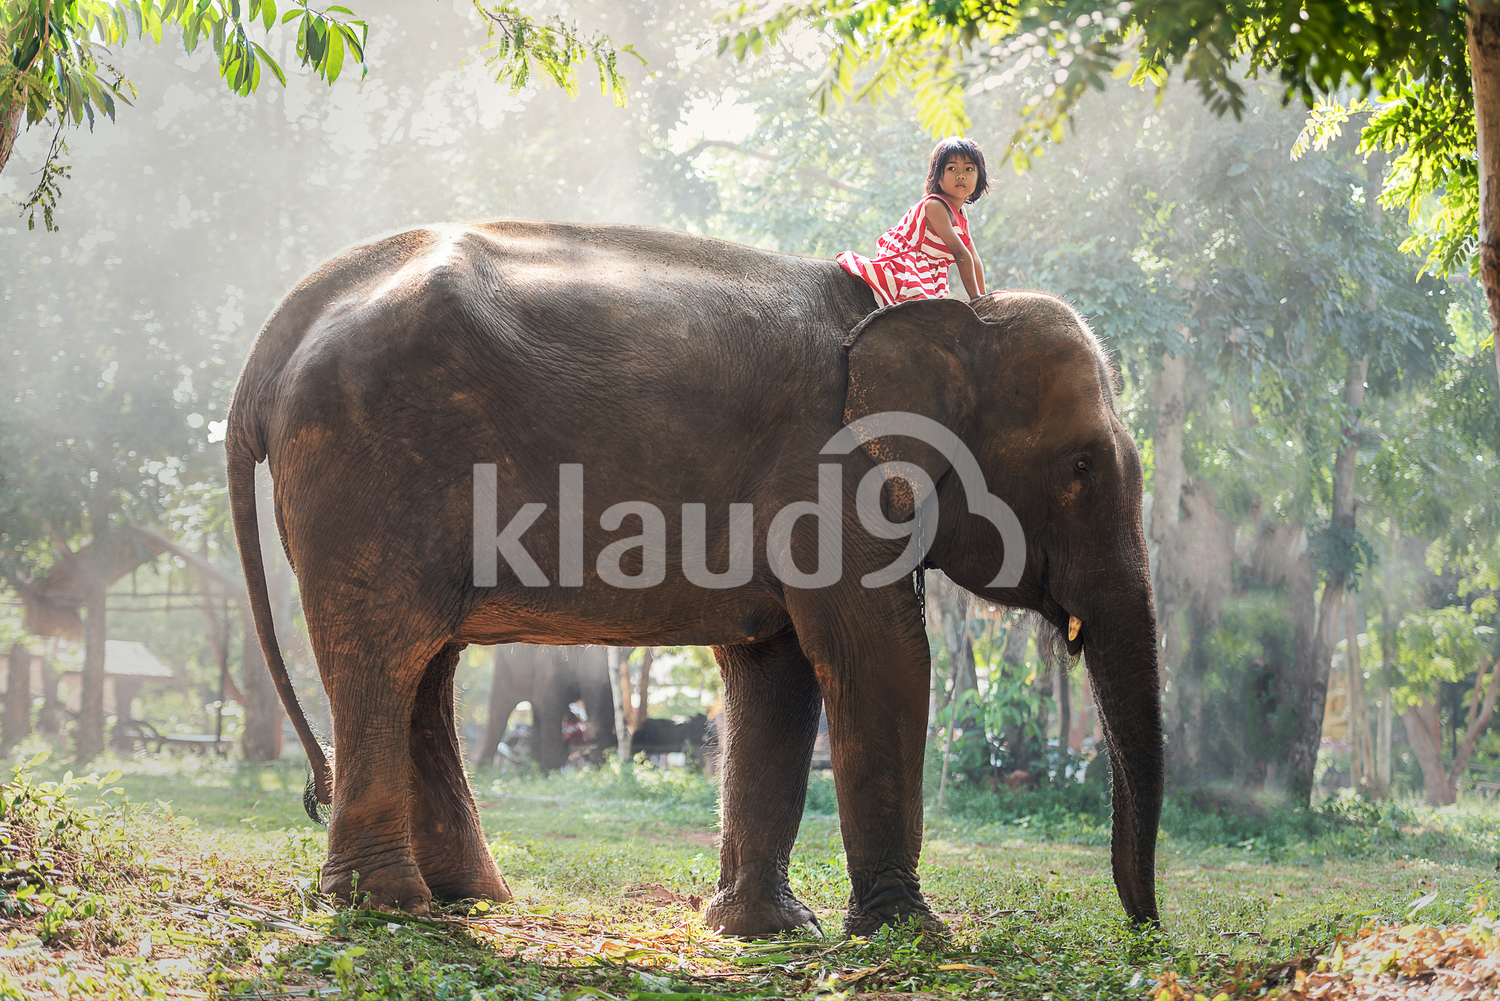 Young girl riding on elephant